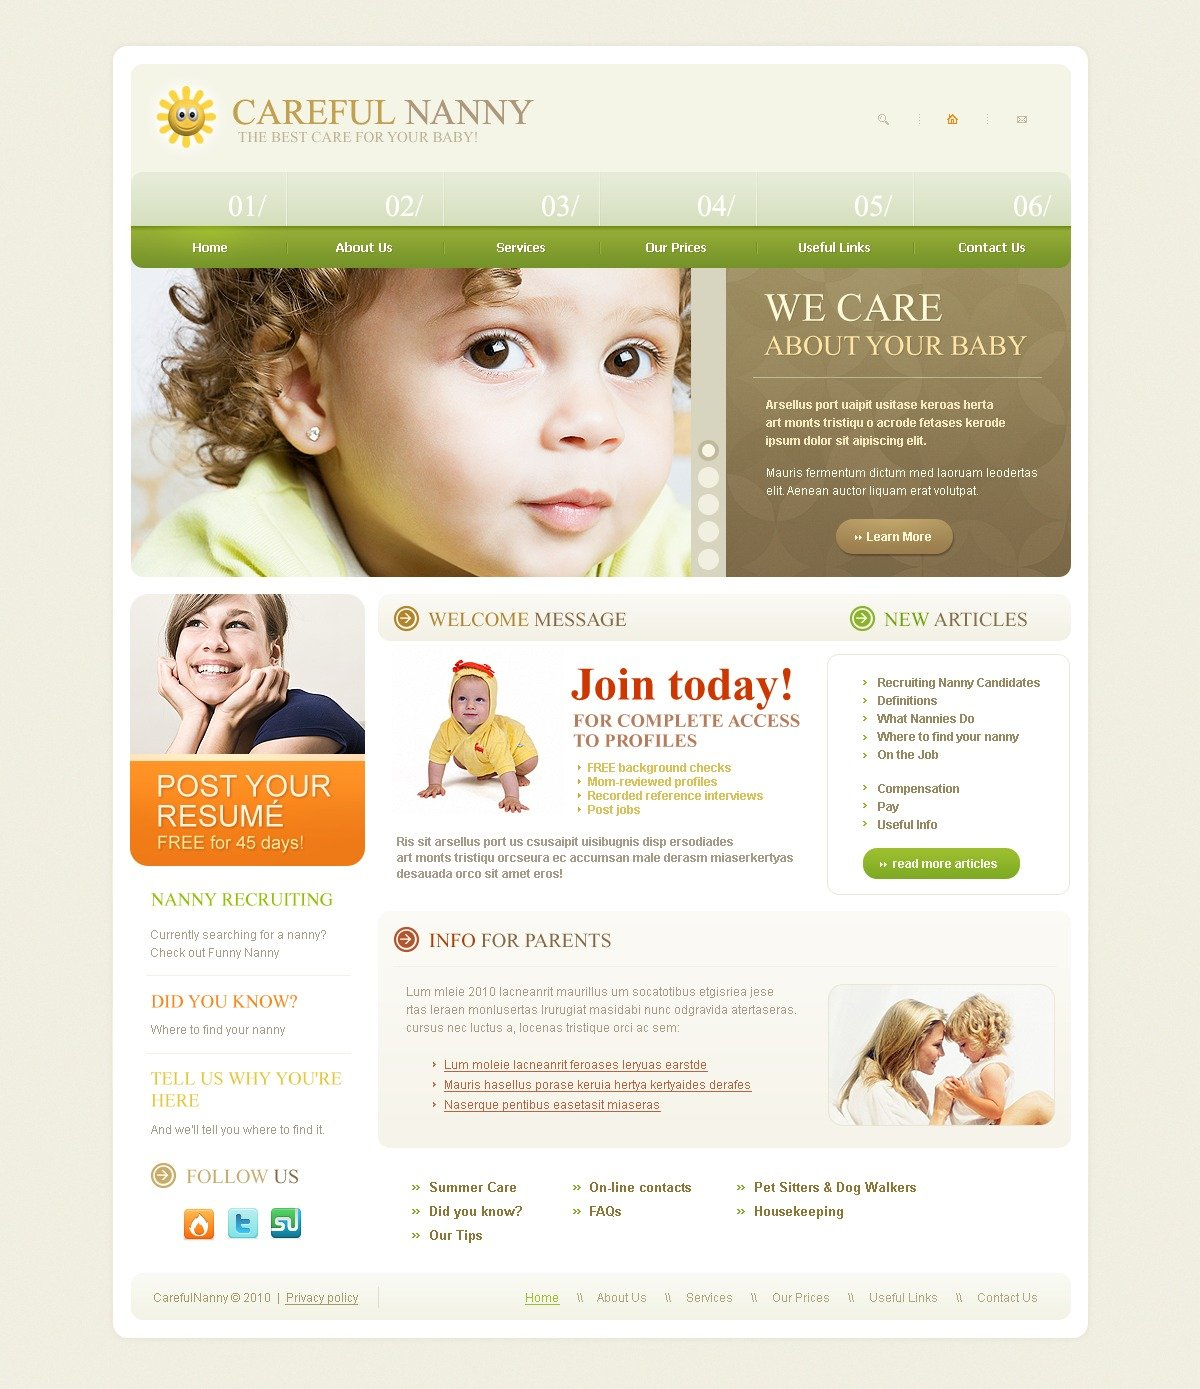 The Careful Nanny PSD Design 54110, one of the best PSD templates of its kind (family, flash 8, wide), also known as careful nanny PSD template, baby-sitter PSD template, nurse PSD template, baby PSD template, children PSD template, child PSD template, kids PSD template, parents PSD template, family care PSD template, help PSD template, resume PSD template, services company PSD template, profile PSD template, prices PSD template, order PSD template, harmony PSD template, hearth PSD template, home PSD template, relationship PSD template, close care PSD template, happiness PSD template, education PSD template, youth PSD template, health PSD template, advices PSD template, events PSD template, entertainment PSD template, information PSD template, support and related with careful nanny, baby-sitter, nurse, baby, children, child, kids, parents, family care, help, resume, services company, profile, prices, order, harmony, hearth, home, relationship, close care, happiness, education, youth, health, advices, events, entertainment, information, support, etc.